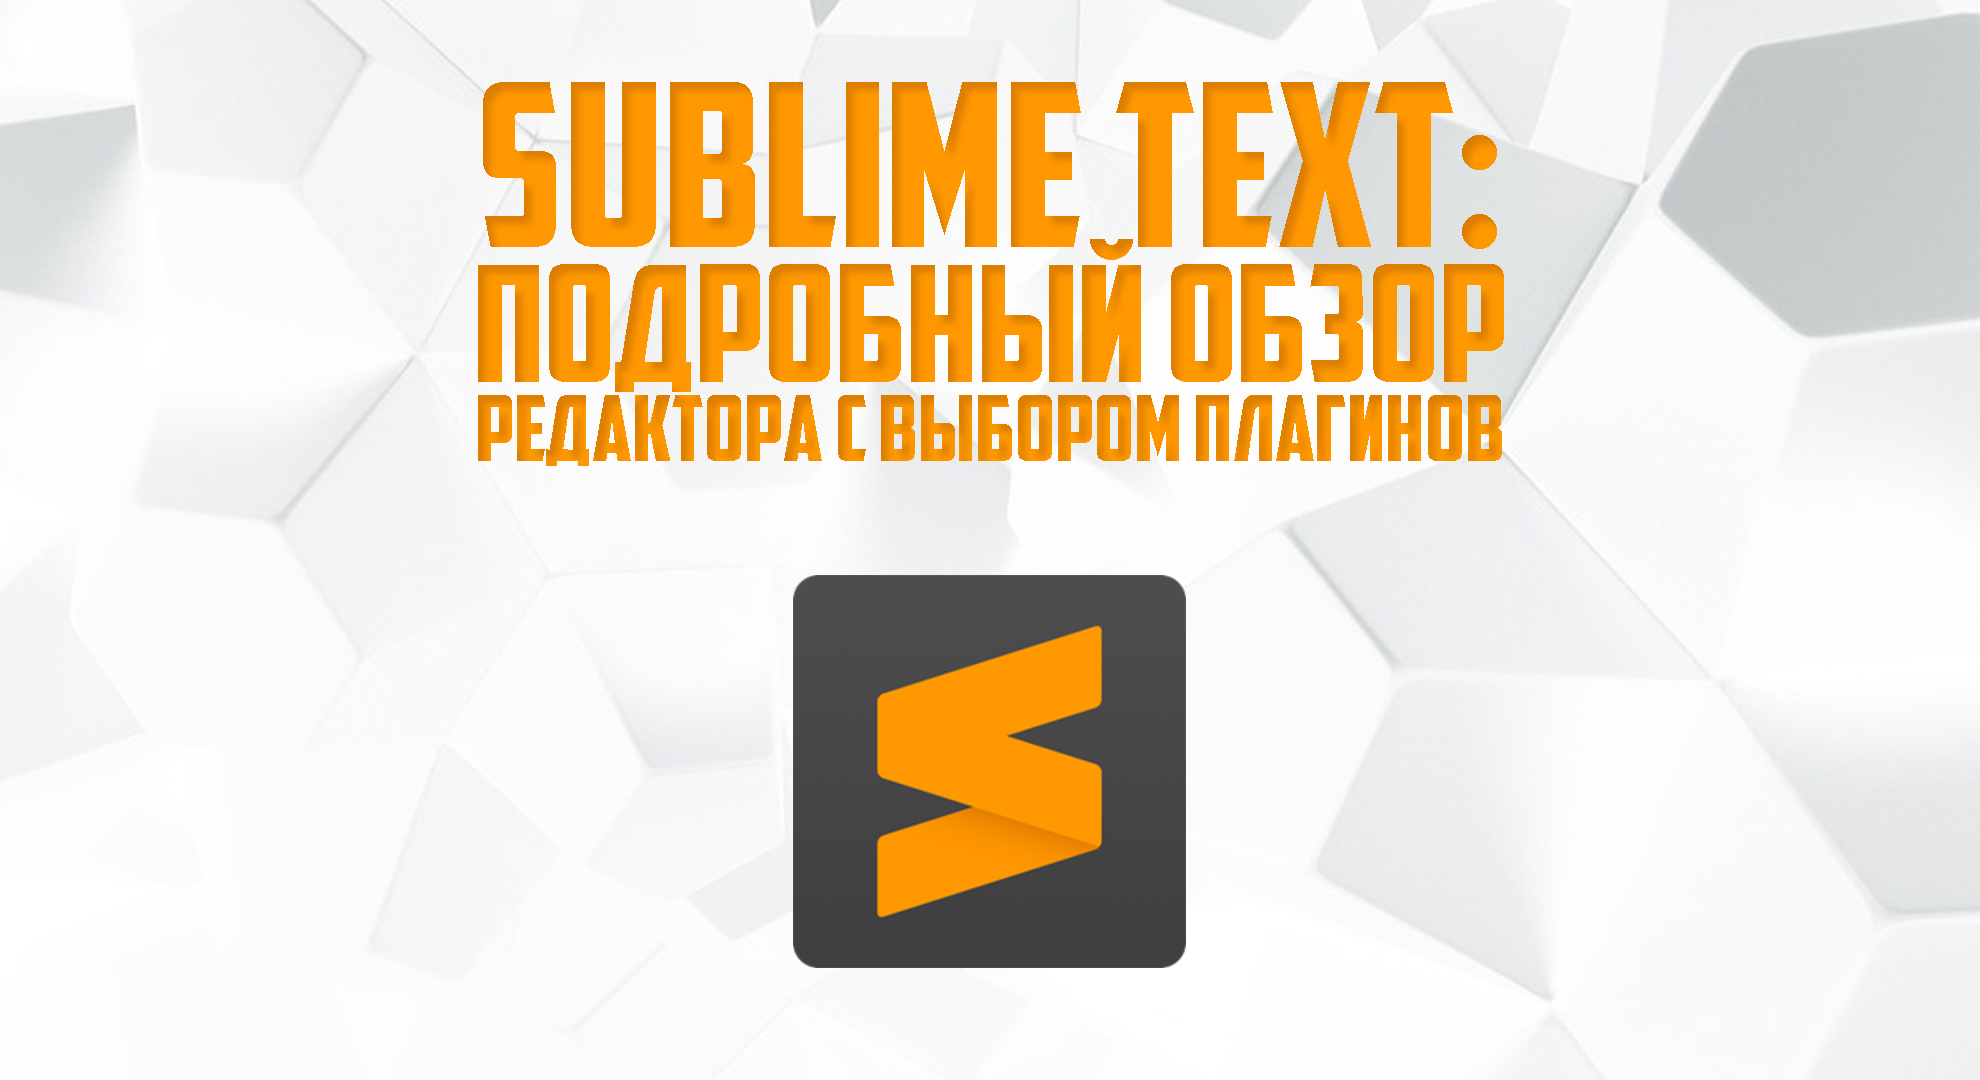 Sublime Text - подробный обзор редактора с выбором плагинов